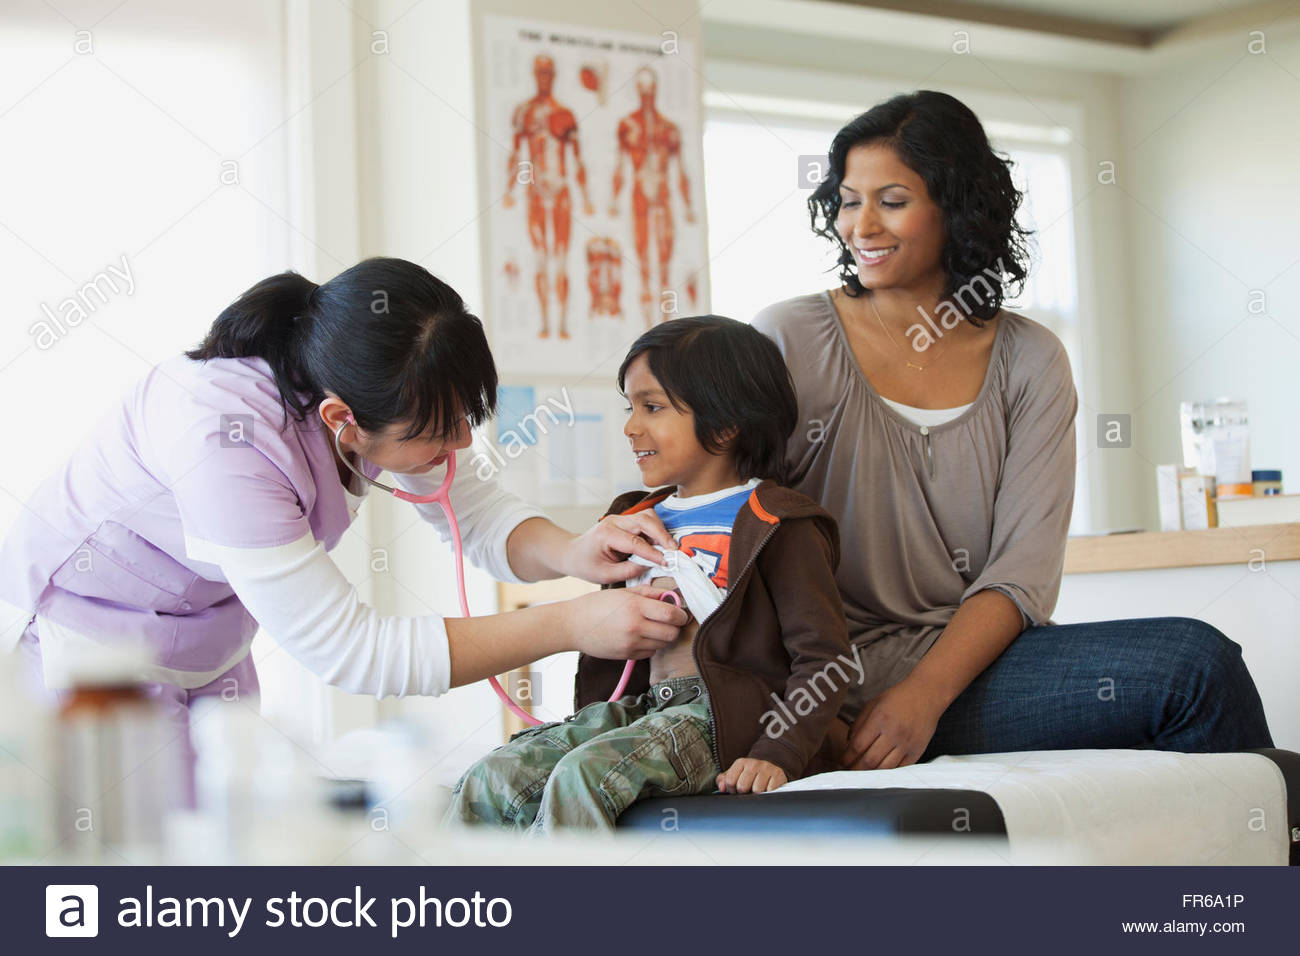 mom and son at medical examination - Stock Image